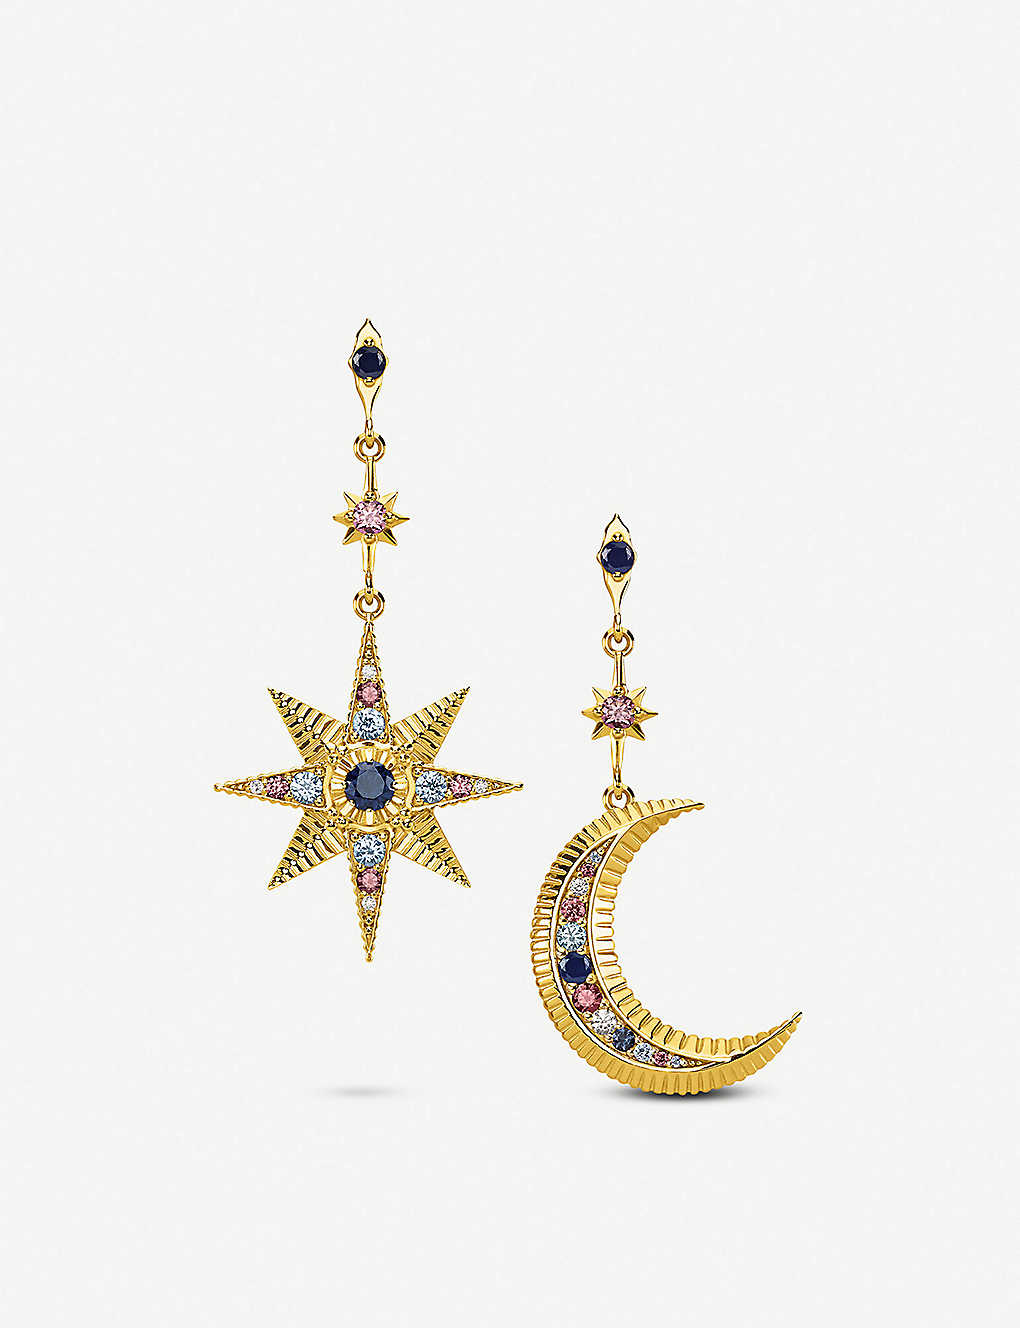 51c13f5e1 THOMAS SABO Kingdom of Dreams Royalty Star & Moon 18ct yellow-gold plated  sterling silver earrings